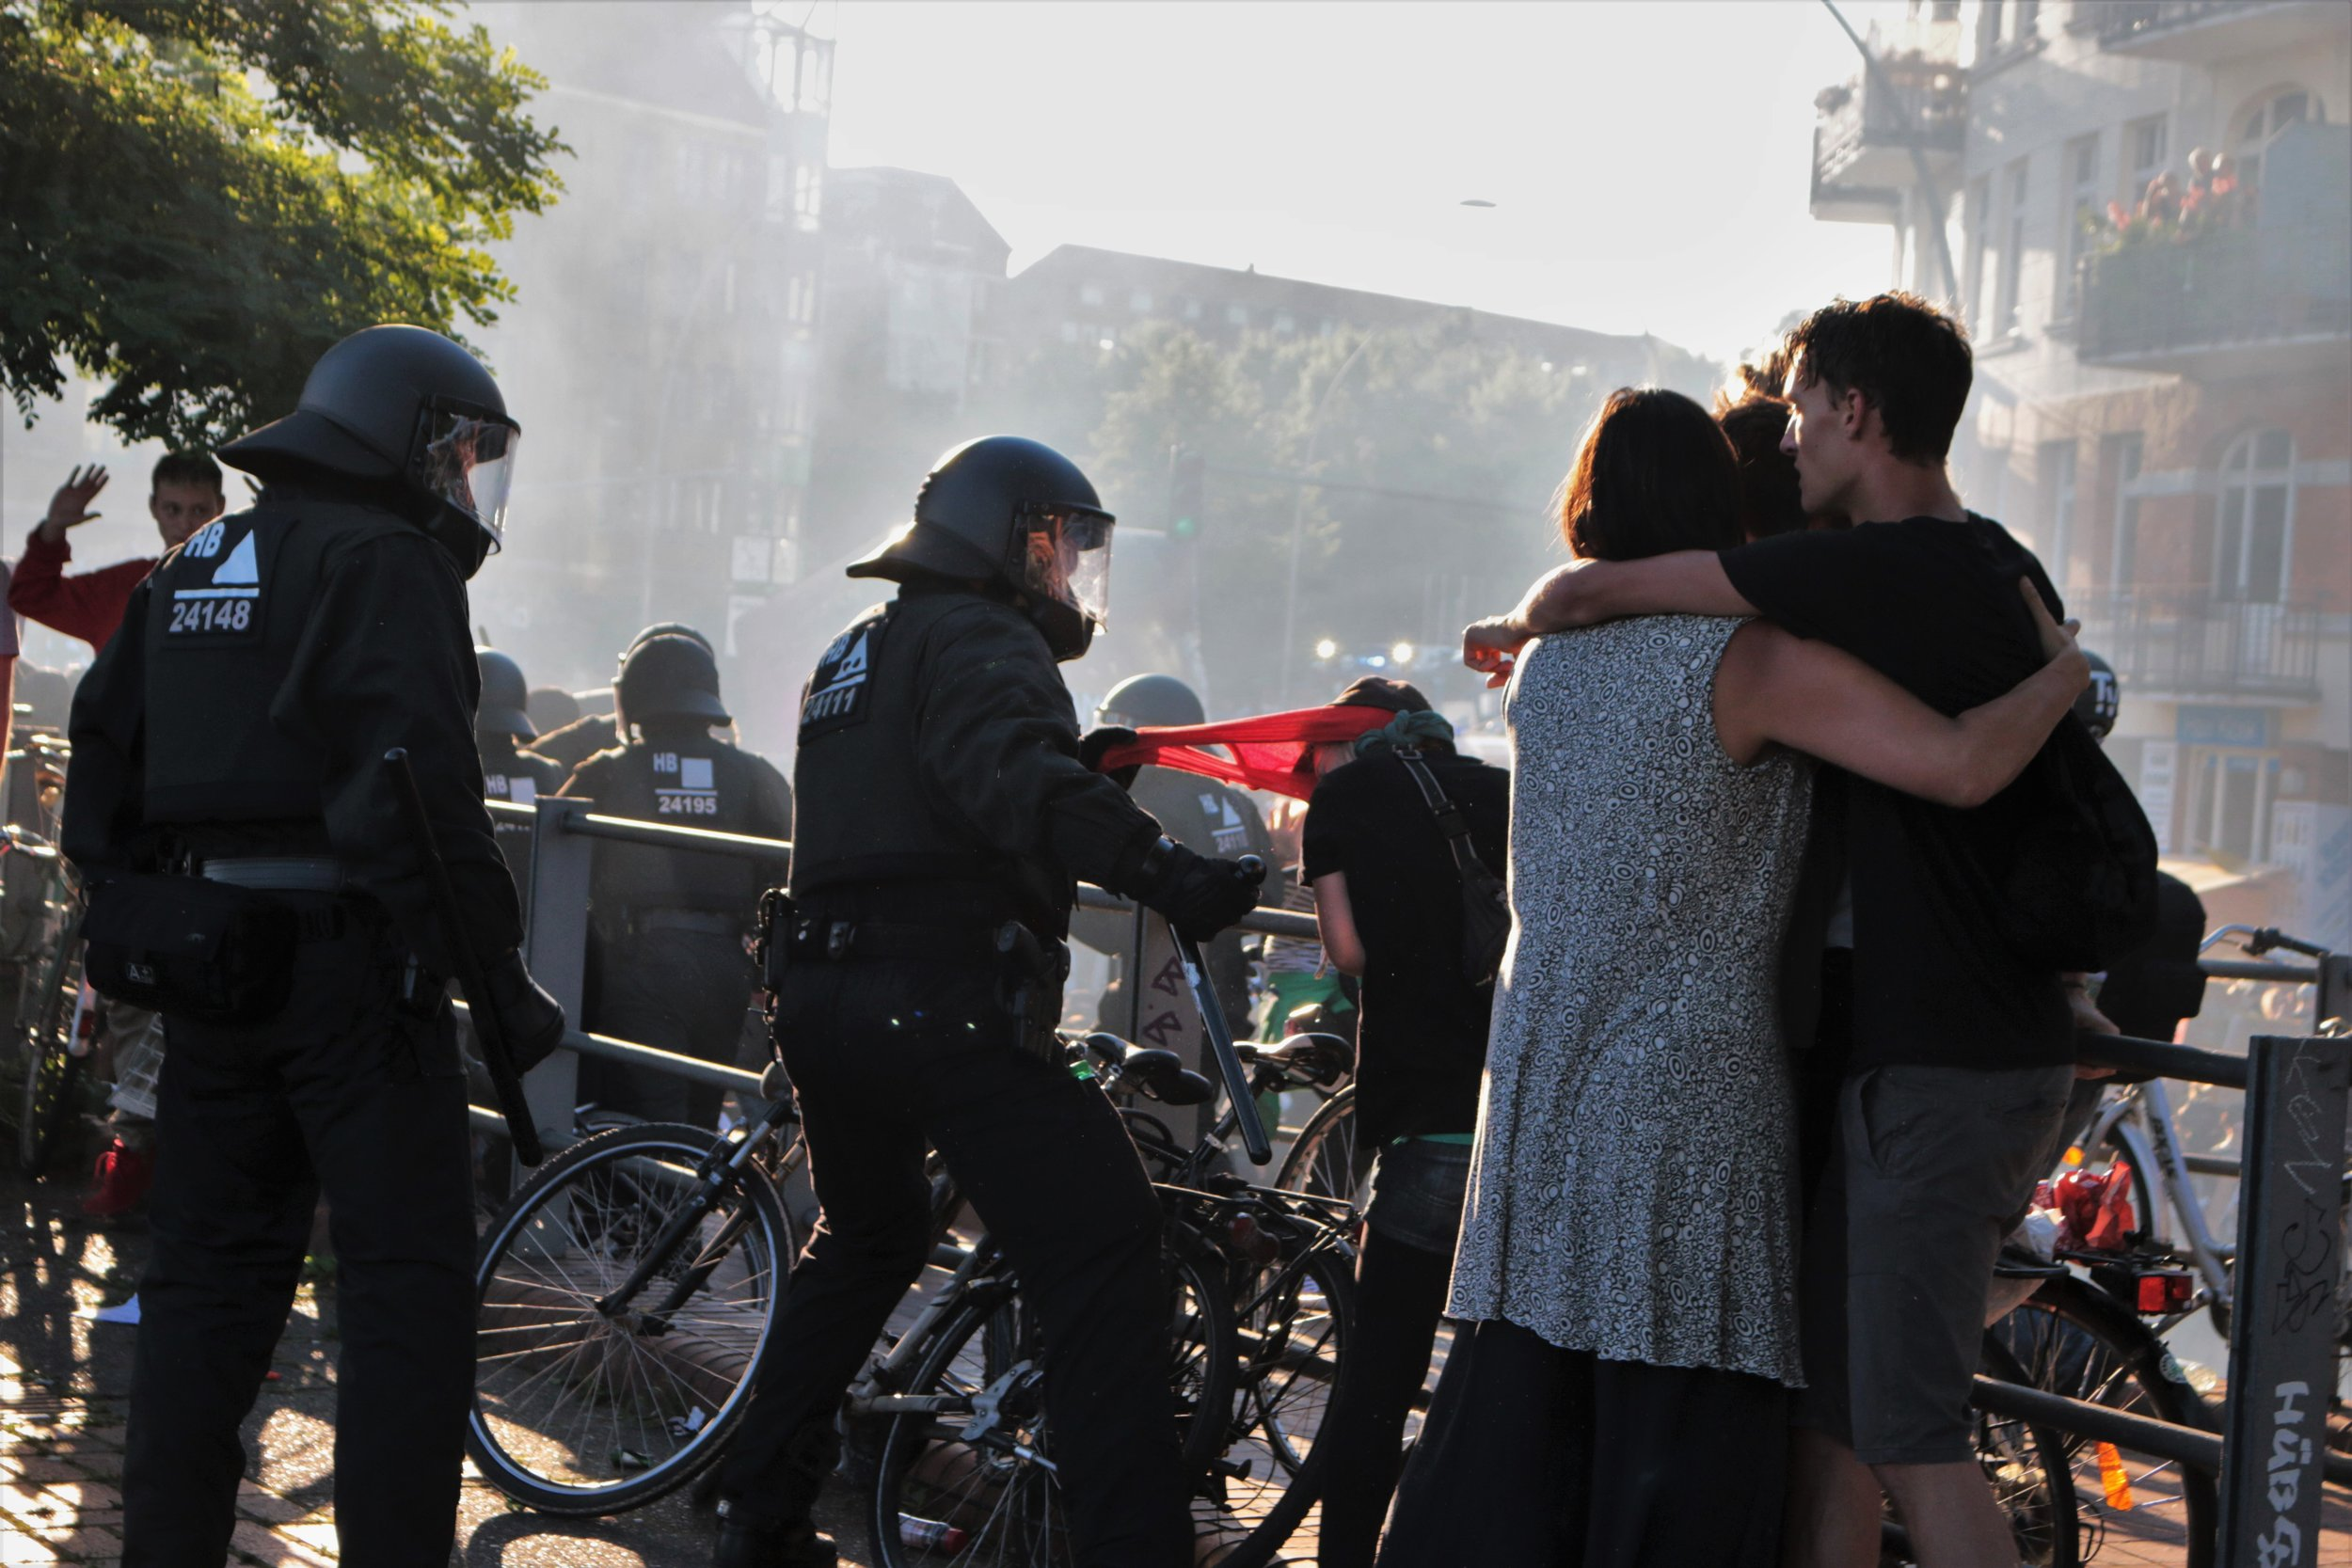 A police officer rips a mask off a protesters face. Police were later criticised for their heavy handed tactics